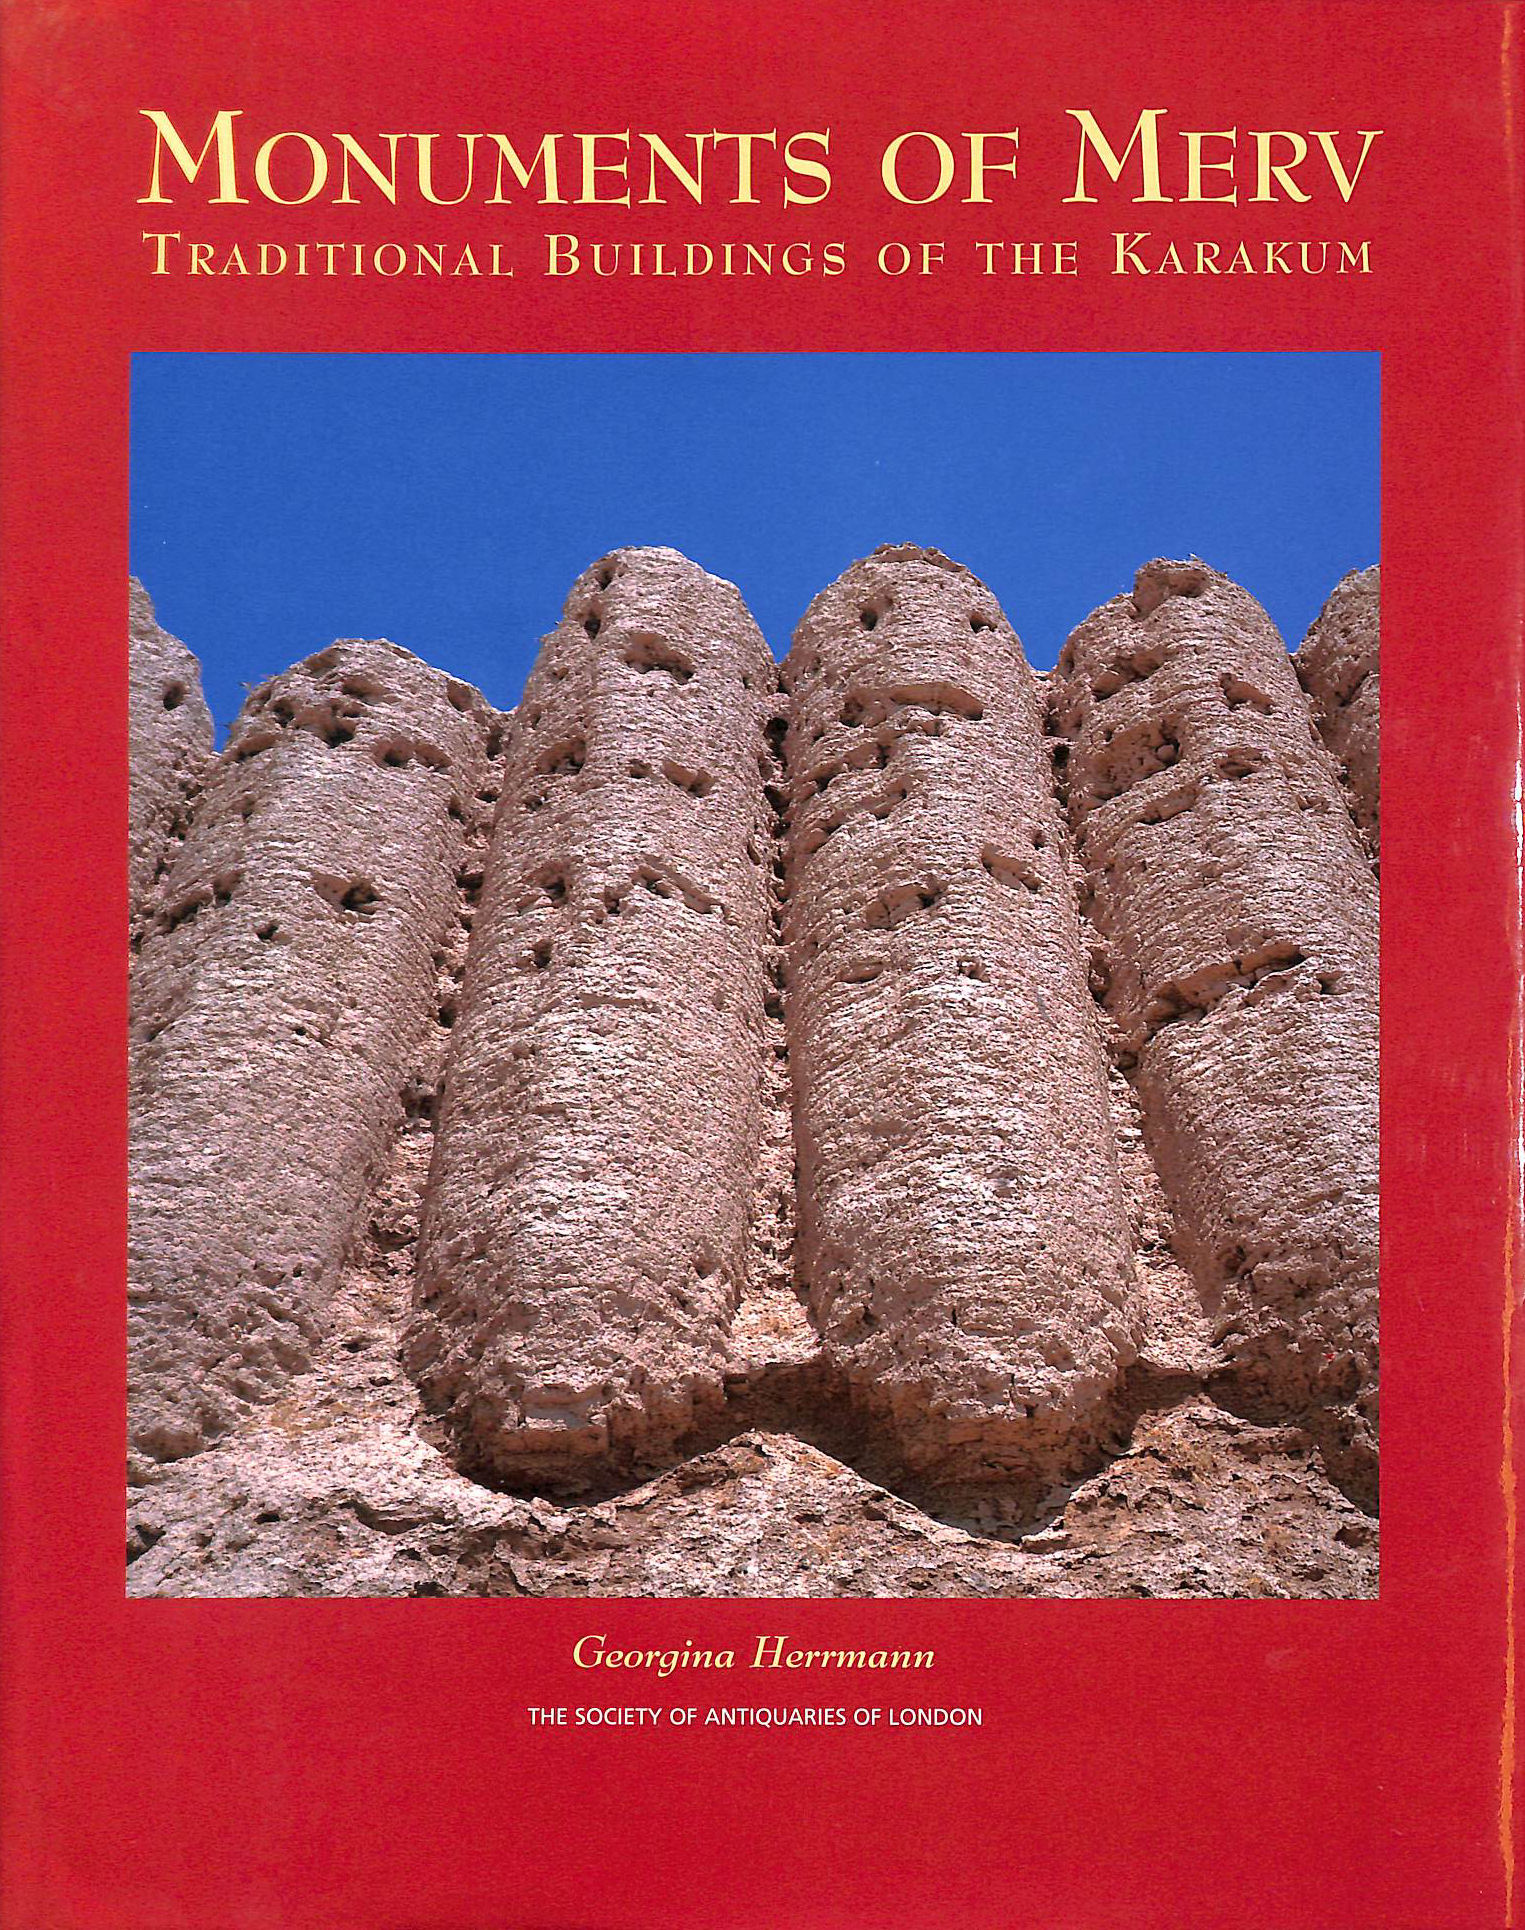 Image for Monuments of Merv: Traditional Buildings of the Karakum (Reports of the Research Committee of the Society of Antiquaries of London)